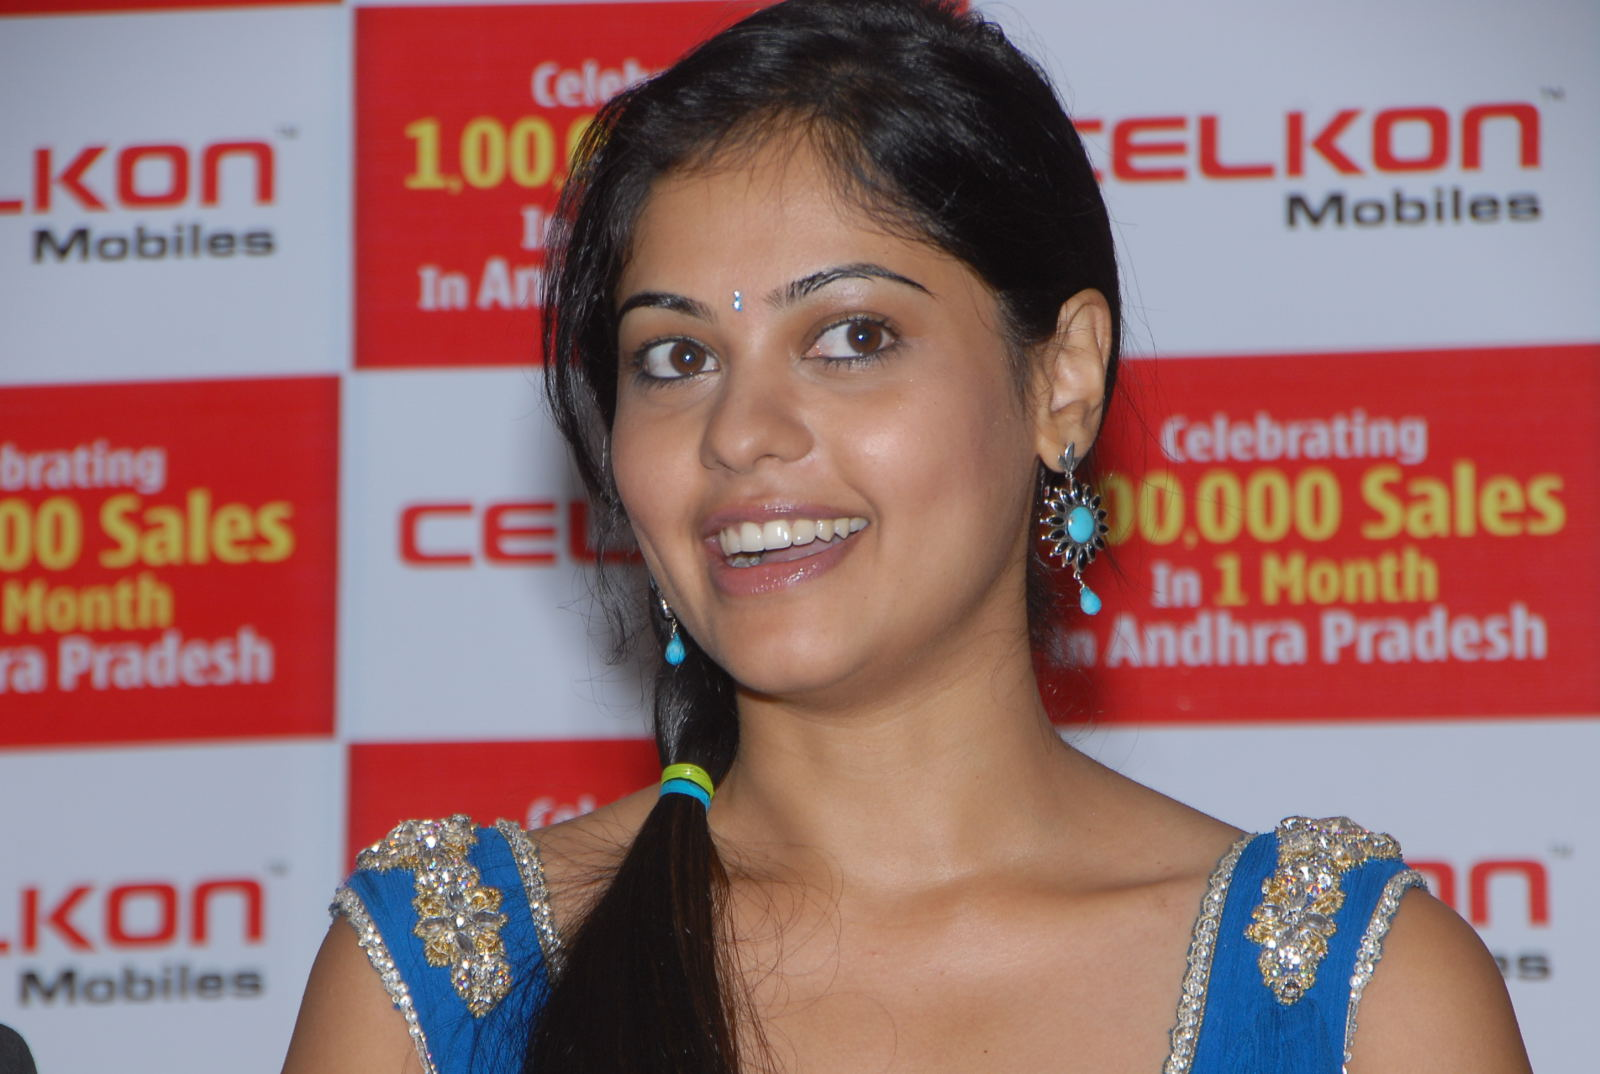 http://1.bp.blogspot.com/-nyeNF0USL-E/TnIT33WjwqI/AAAAAAAADSo/3WroAQGynvs/s1600/Bindu+madhavi+Latest+Stills+In+Private+Event+%25285%2529.JPG